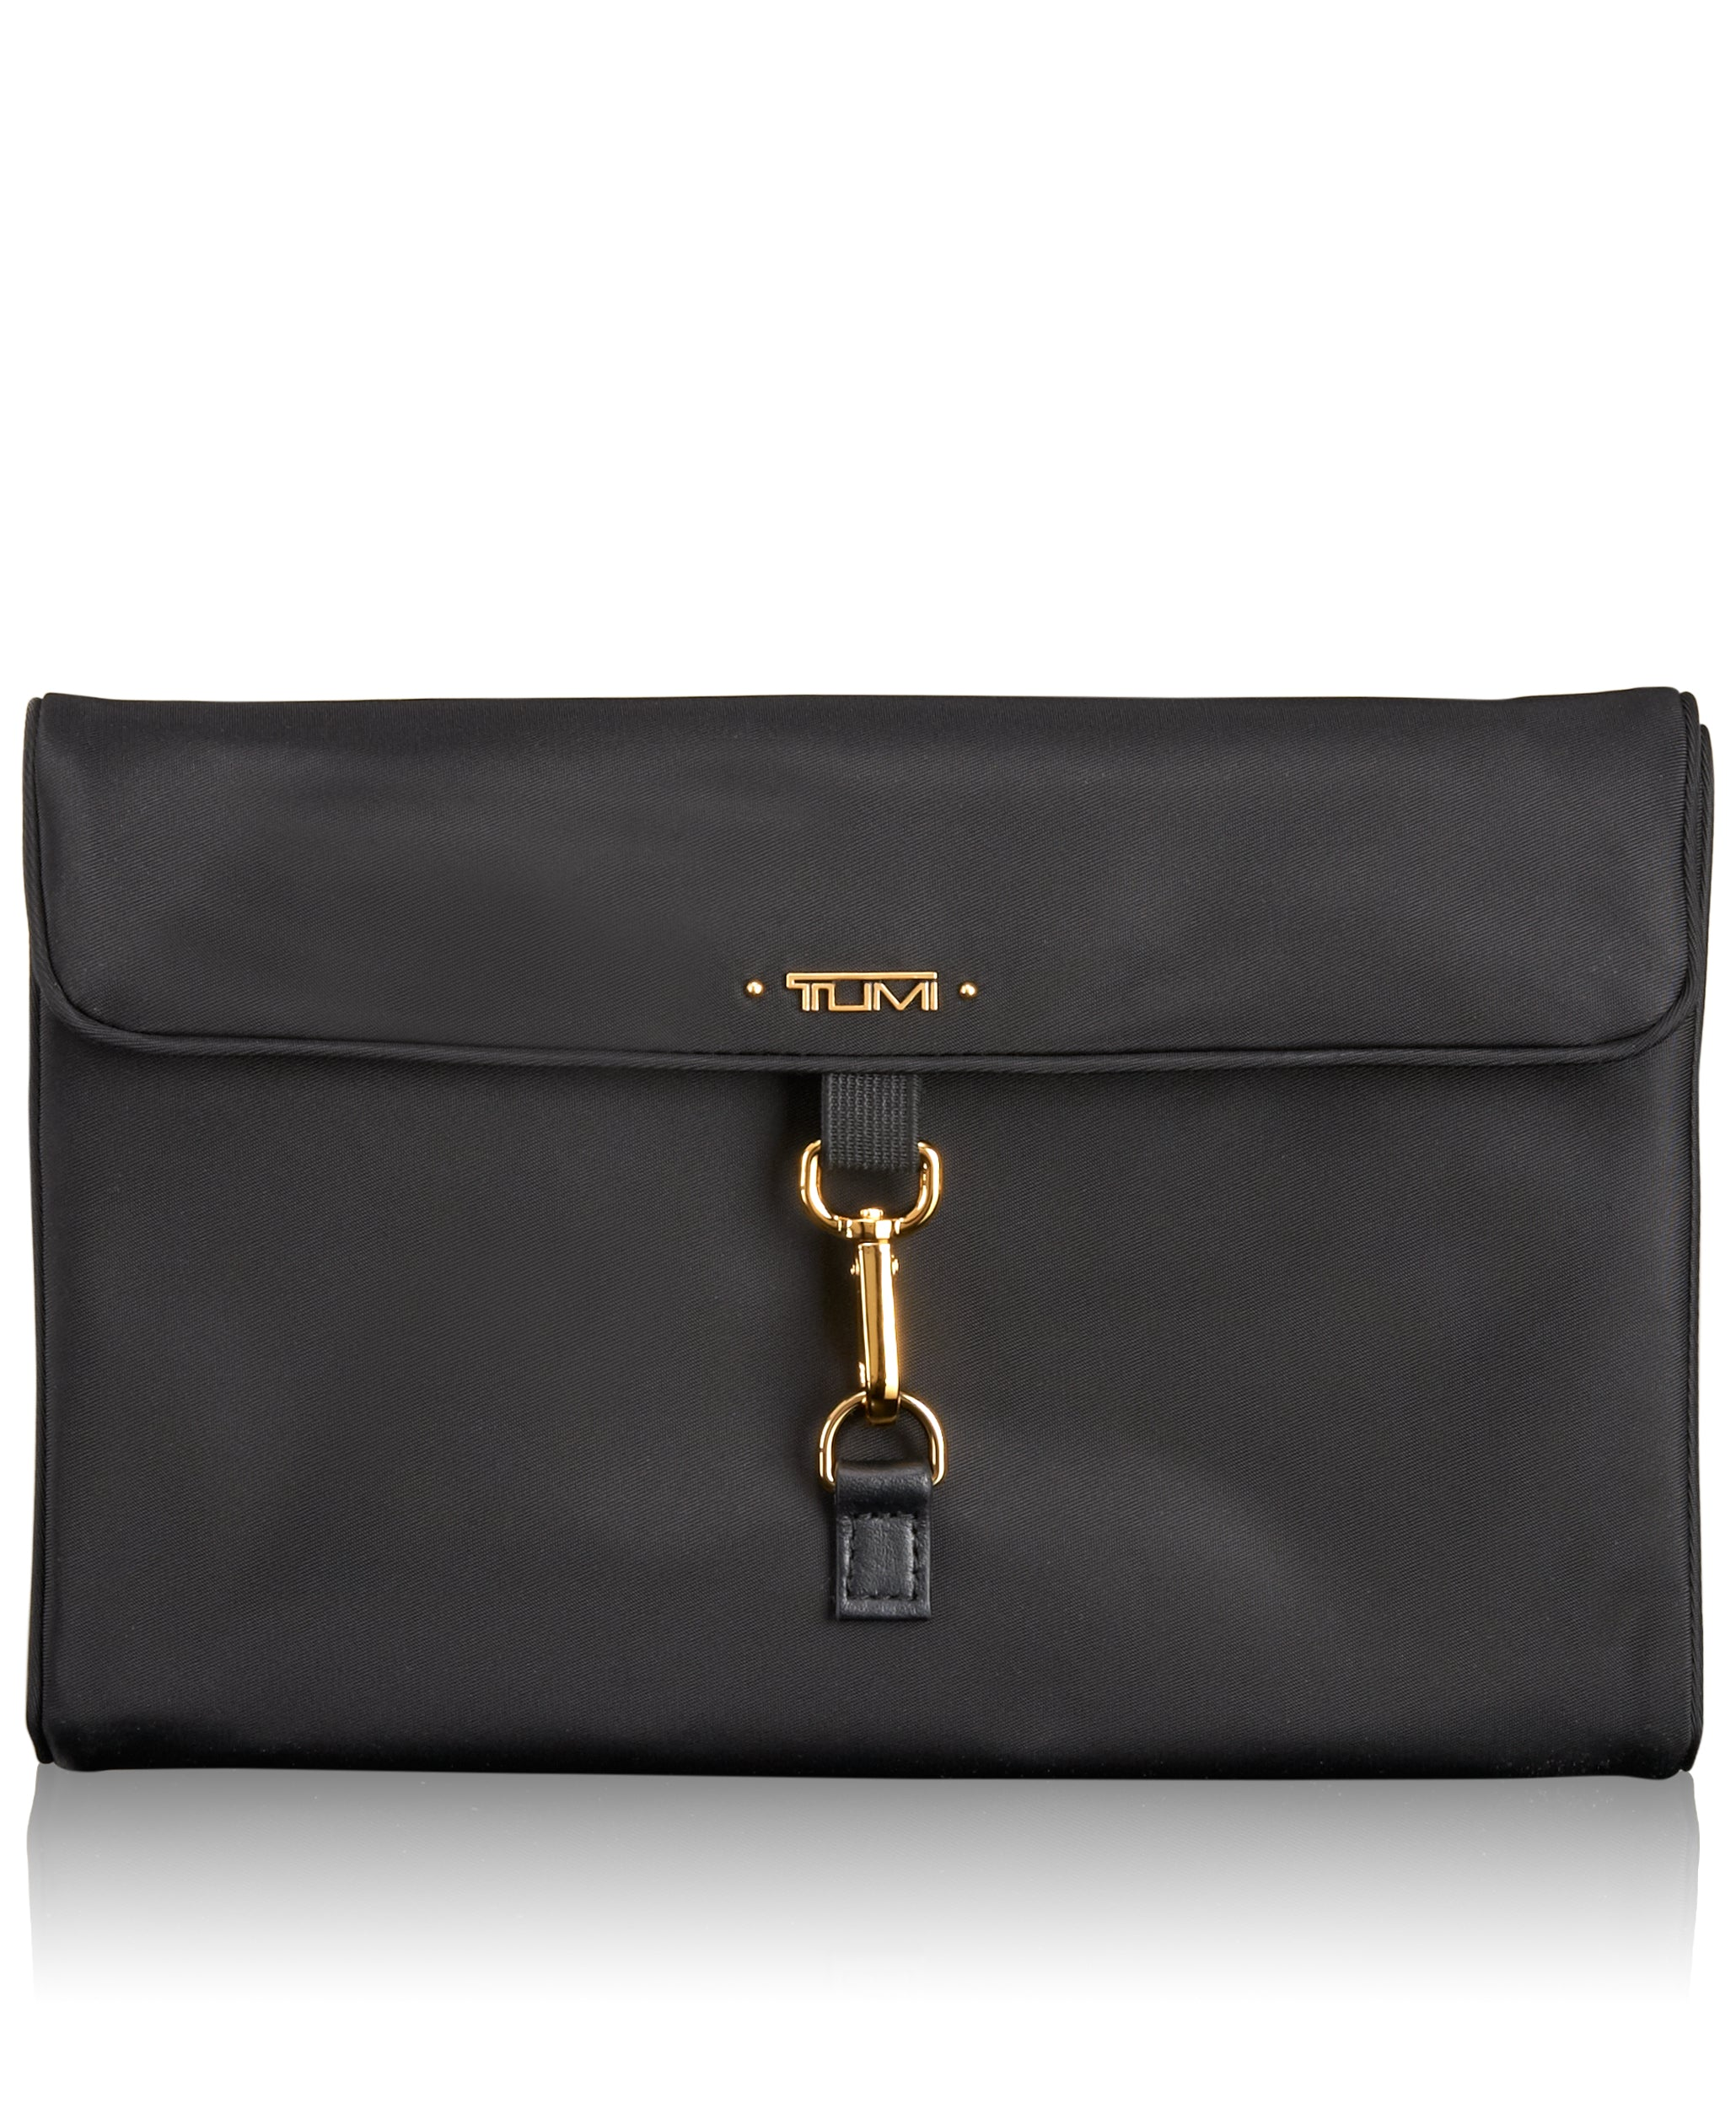 Tumi Voyageur Jewelry Travel Roll- Black | MEGO